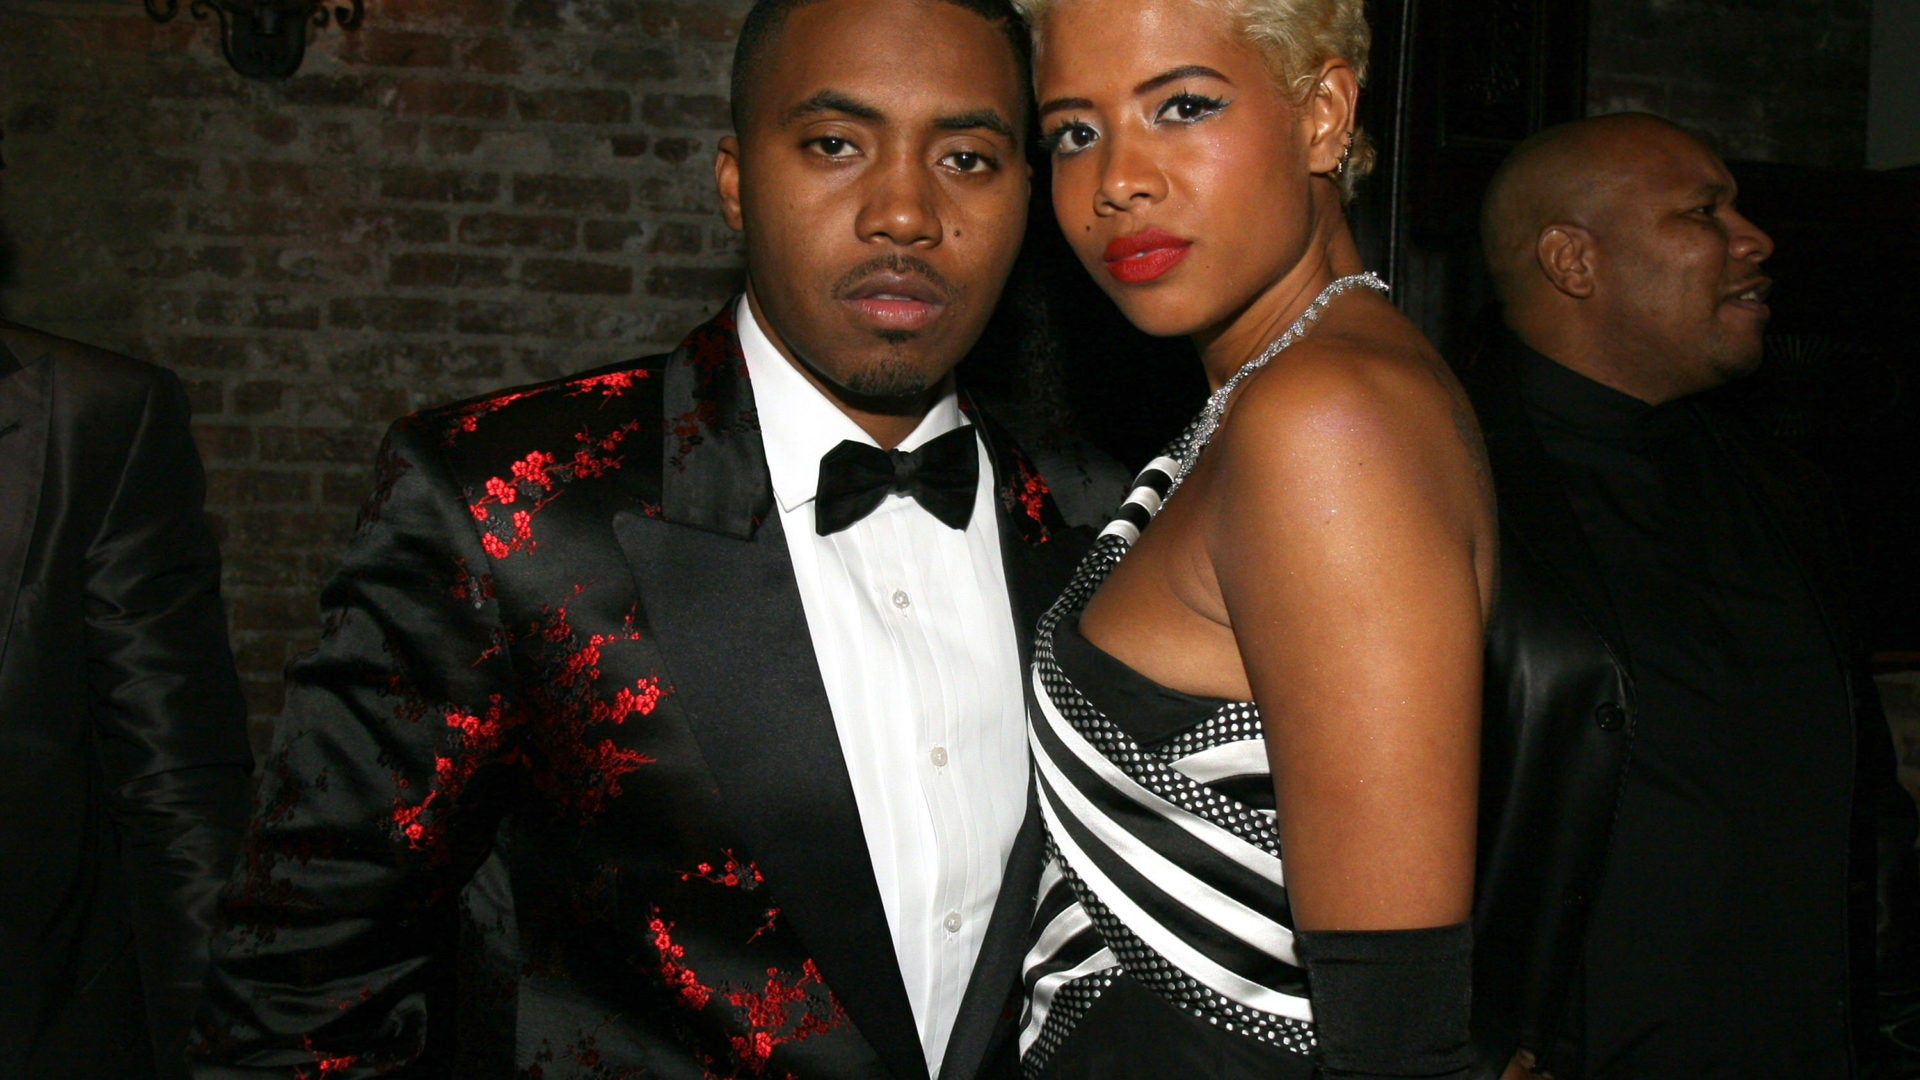 Kelis Breaks Silence On Her 'Violent' Relationship With Nas: 'It Was Really Dark'